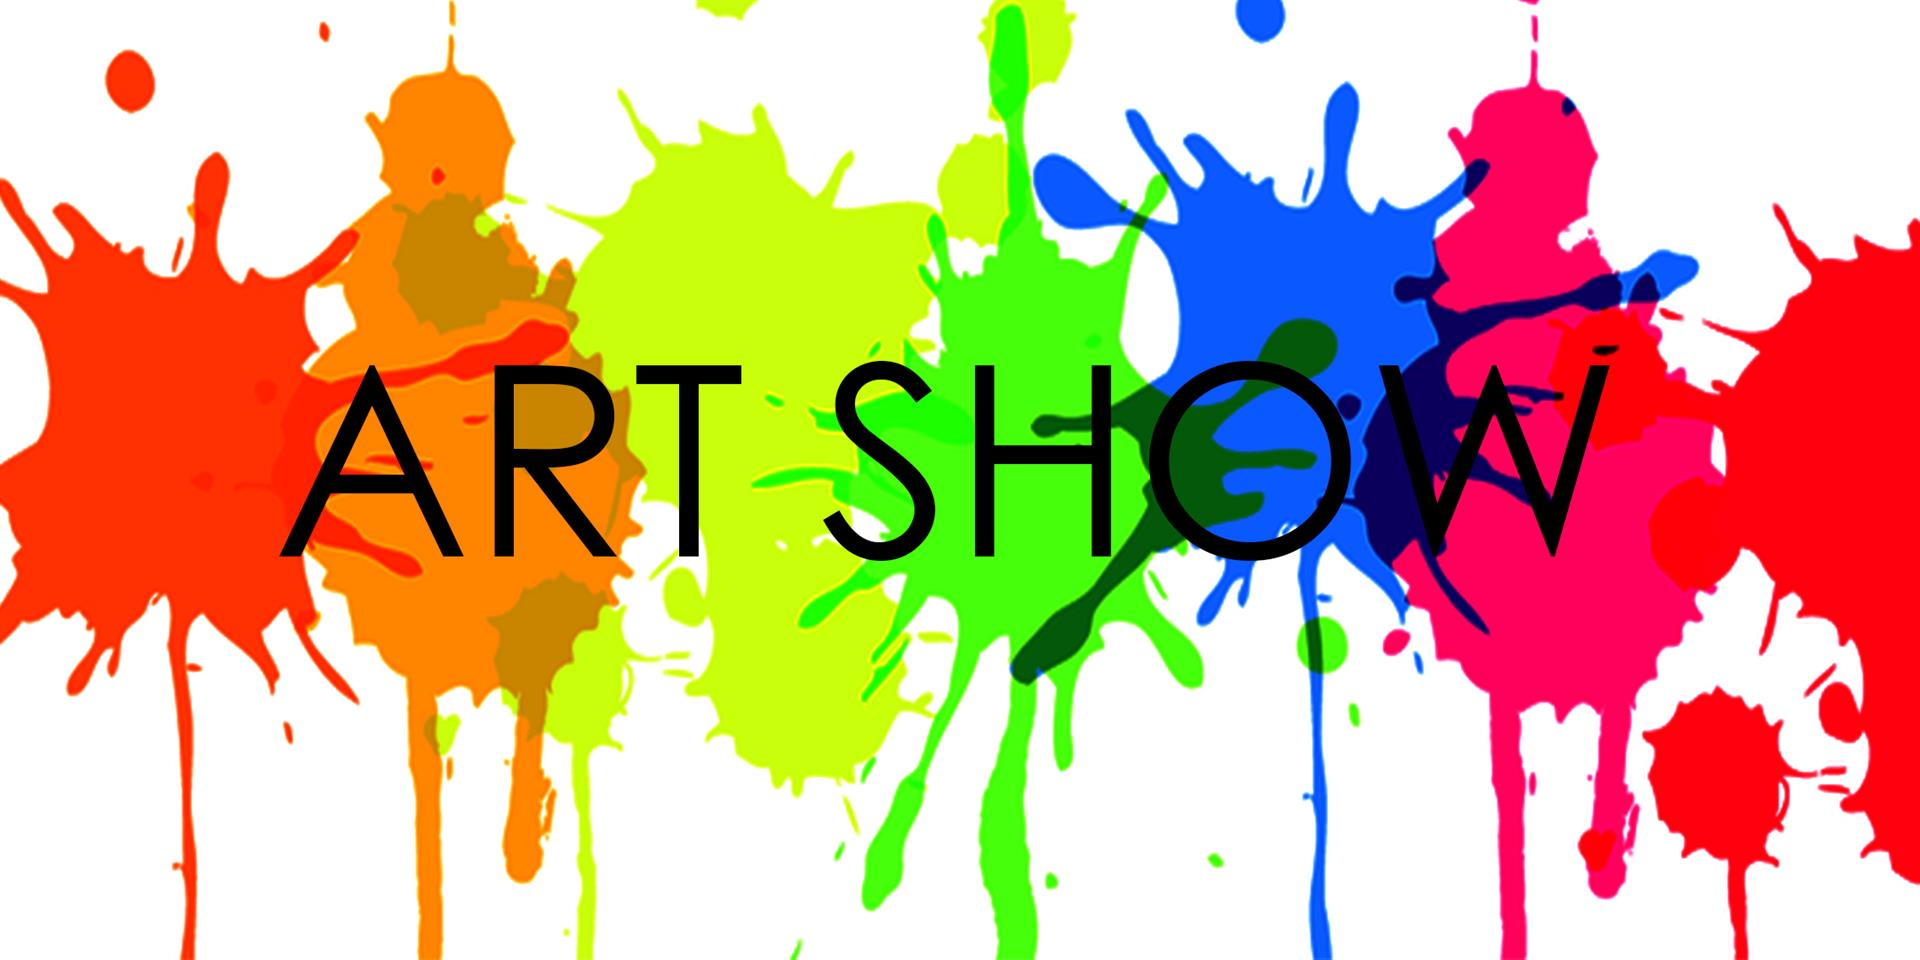 Art show printed in fine lines with a red, orange, light green, green, blue, and red blotches of paint as background.